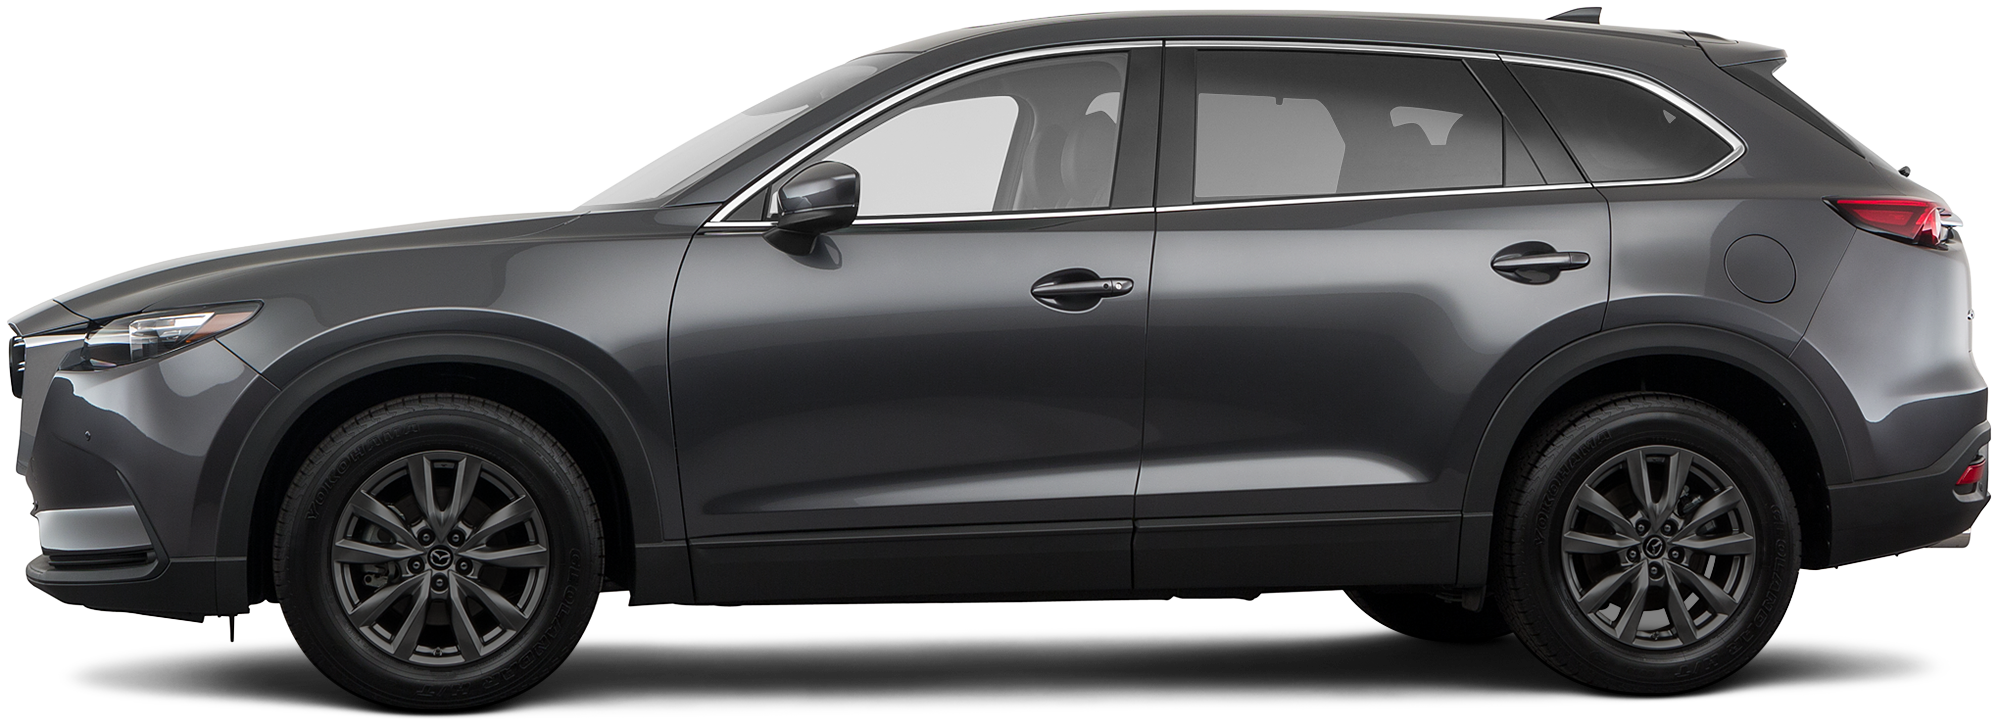 http://images.dealer.com/ddc/vehicles/2021/Mazda/CX-9/SUV/trim_Sport_9899ec/perspective/side-left/2021_24.png